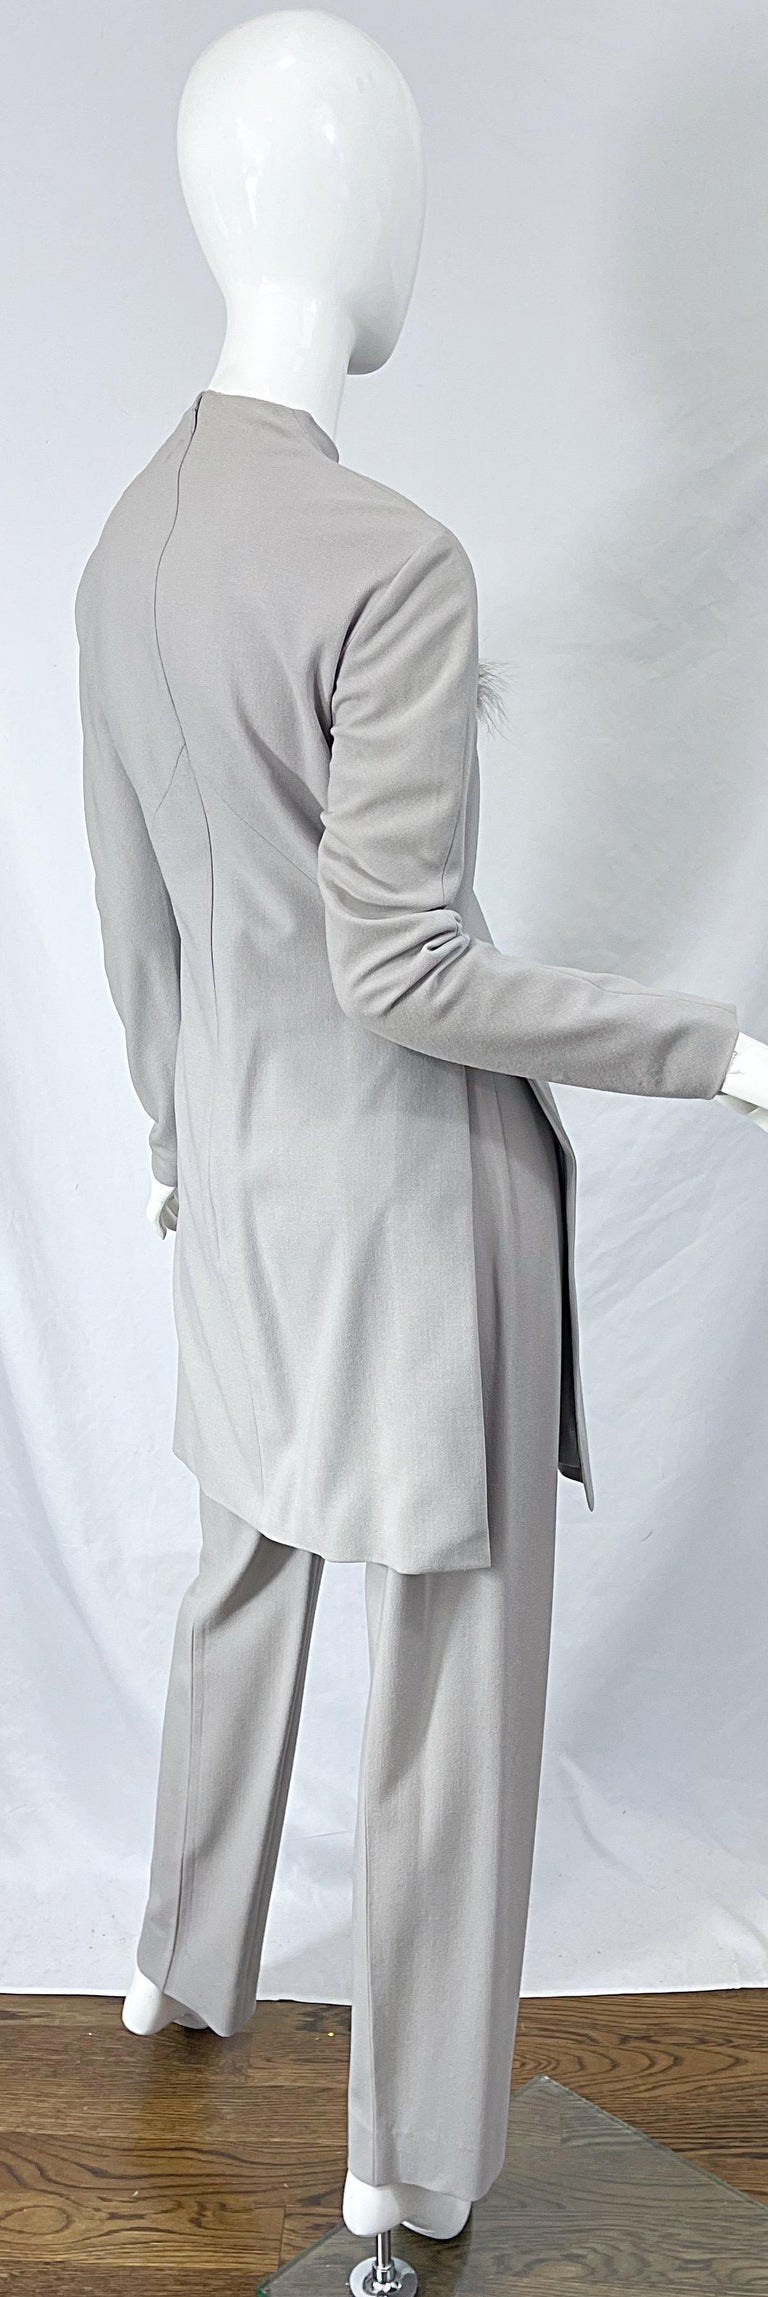 Givenchy Couture Alexander McQueen F/W 2003 Grey Runway Tunic + Slim Pants For Sale 8